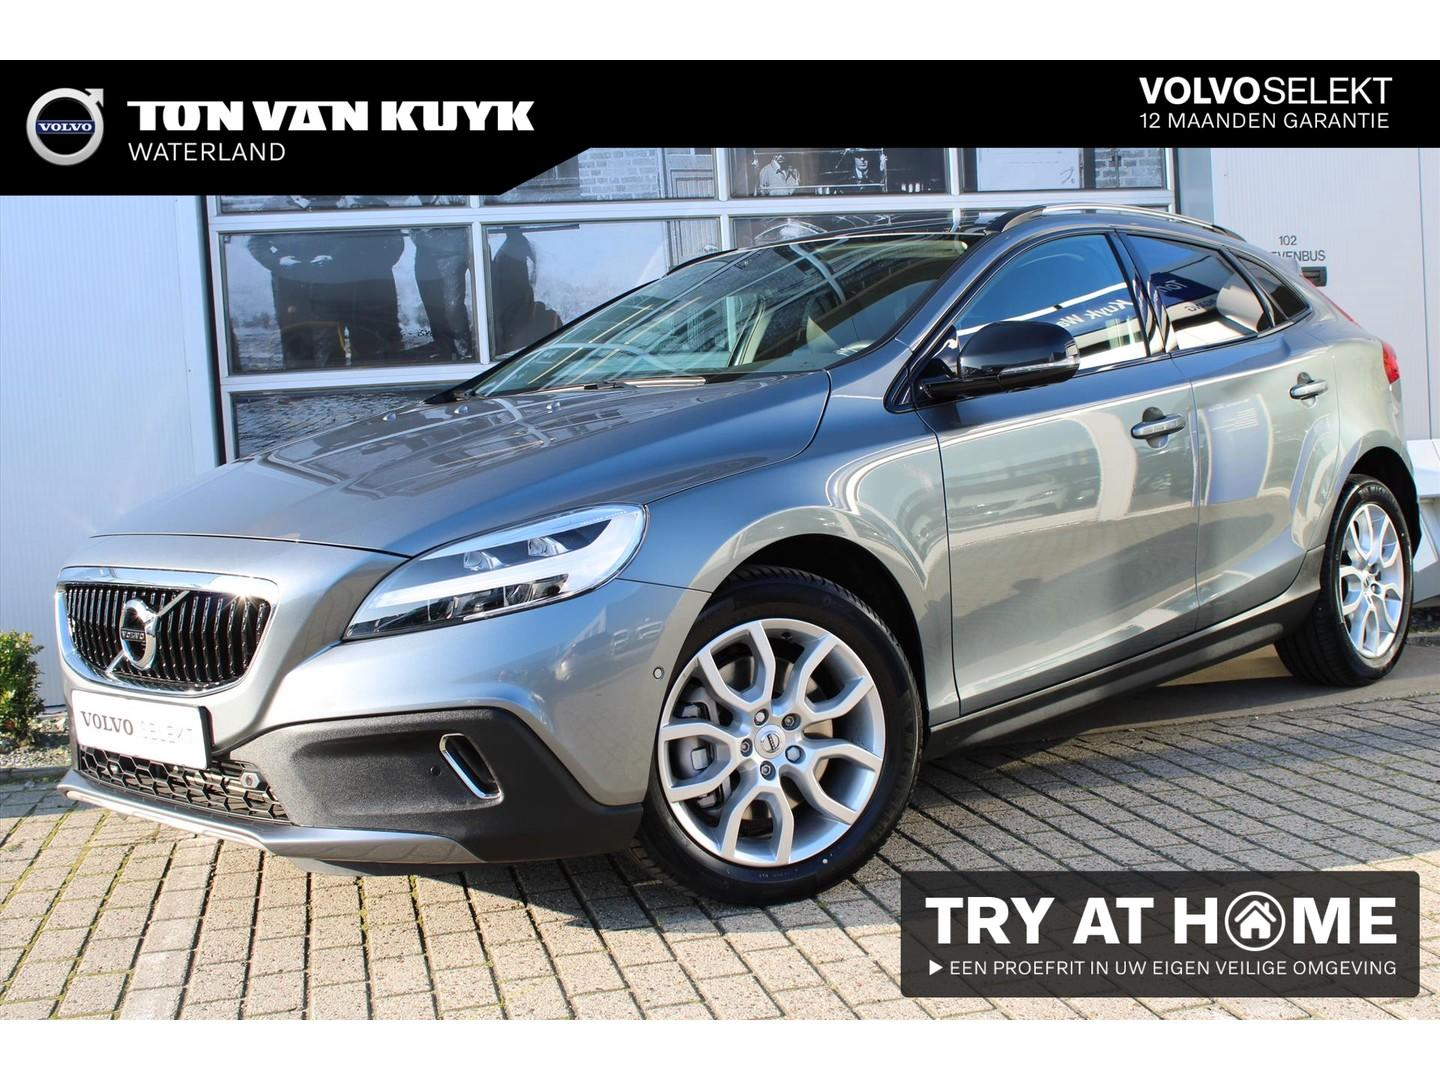 Volvo V40 cross country T3 1.5 152pk automaat polar+ luxury / dab+ / standkachel / harman kardon